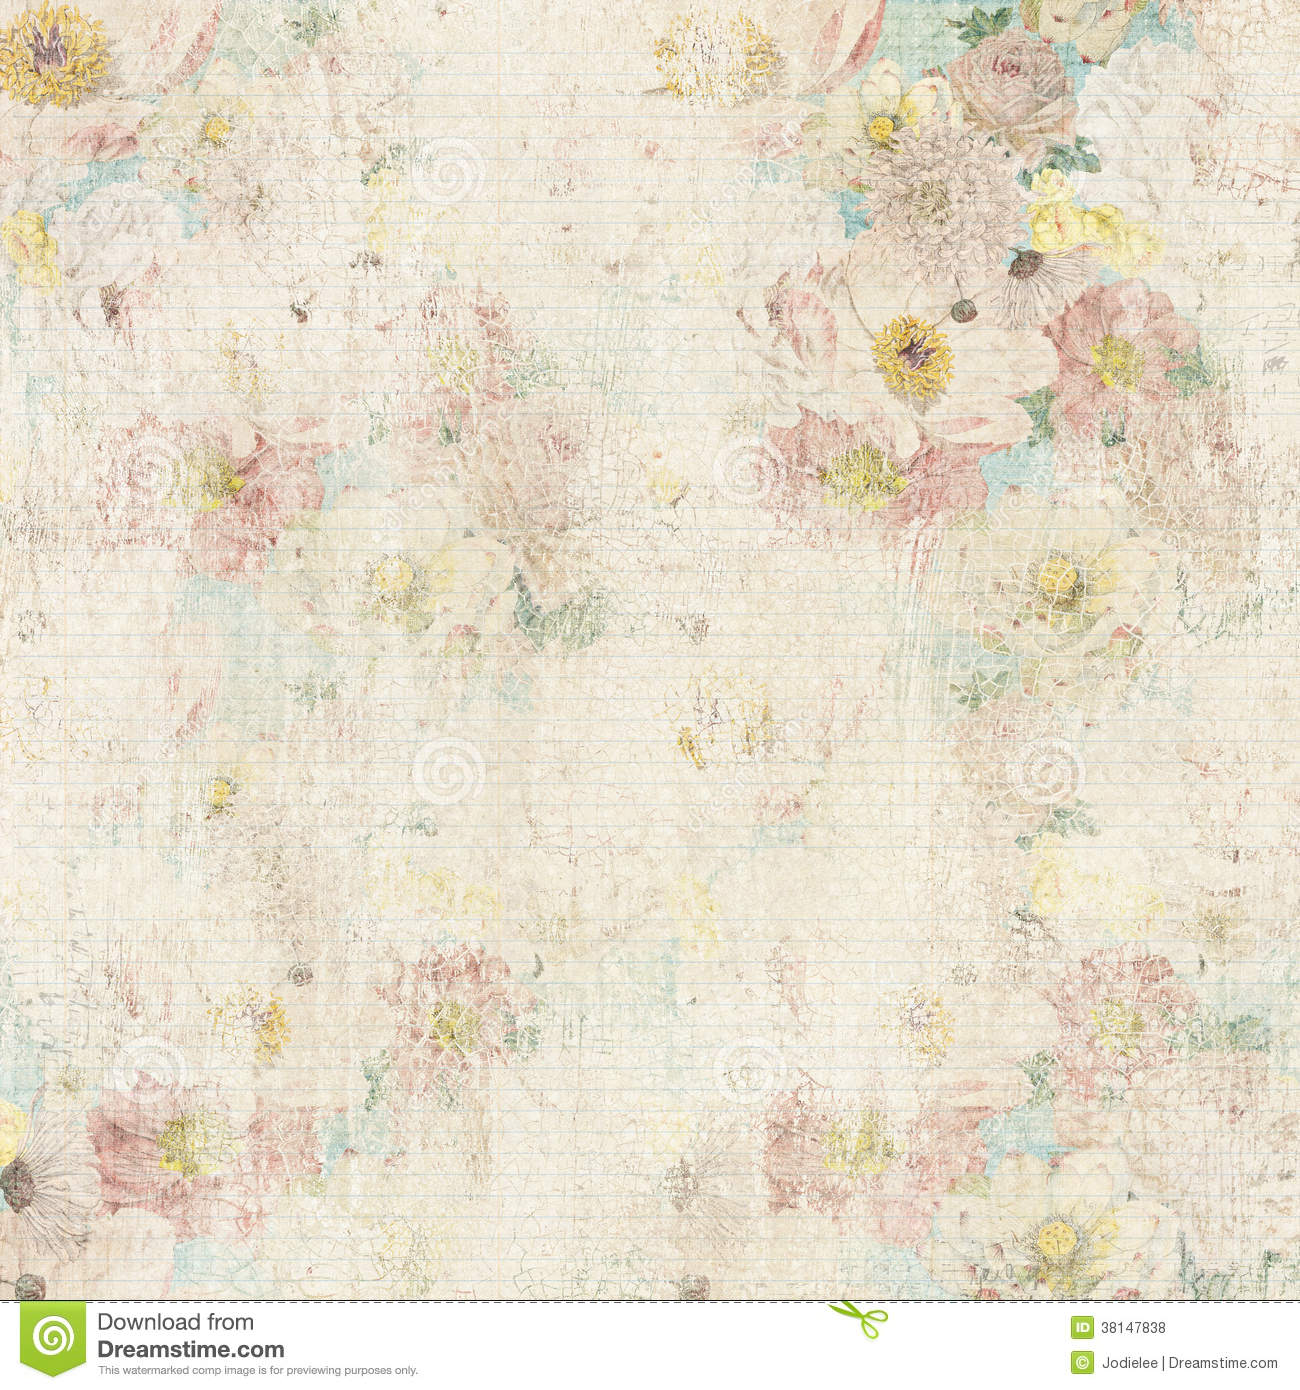 Grungy Vintage Floral Background Stock Photo Image Of Cracked